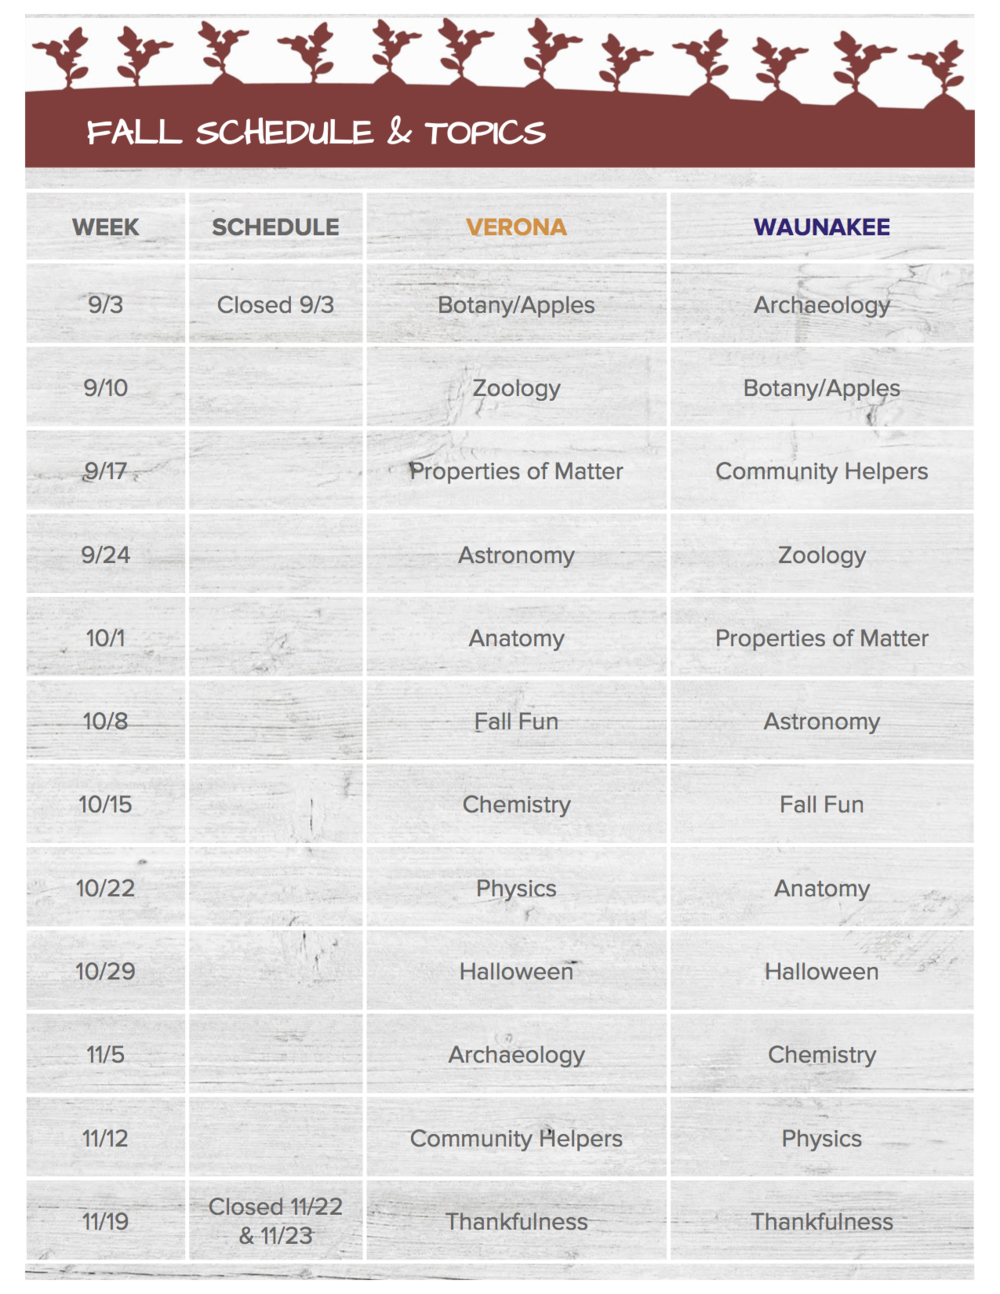 Fall Topics & Schedule.png